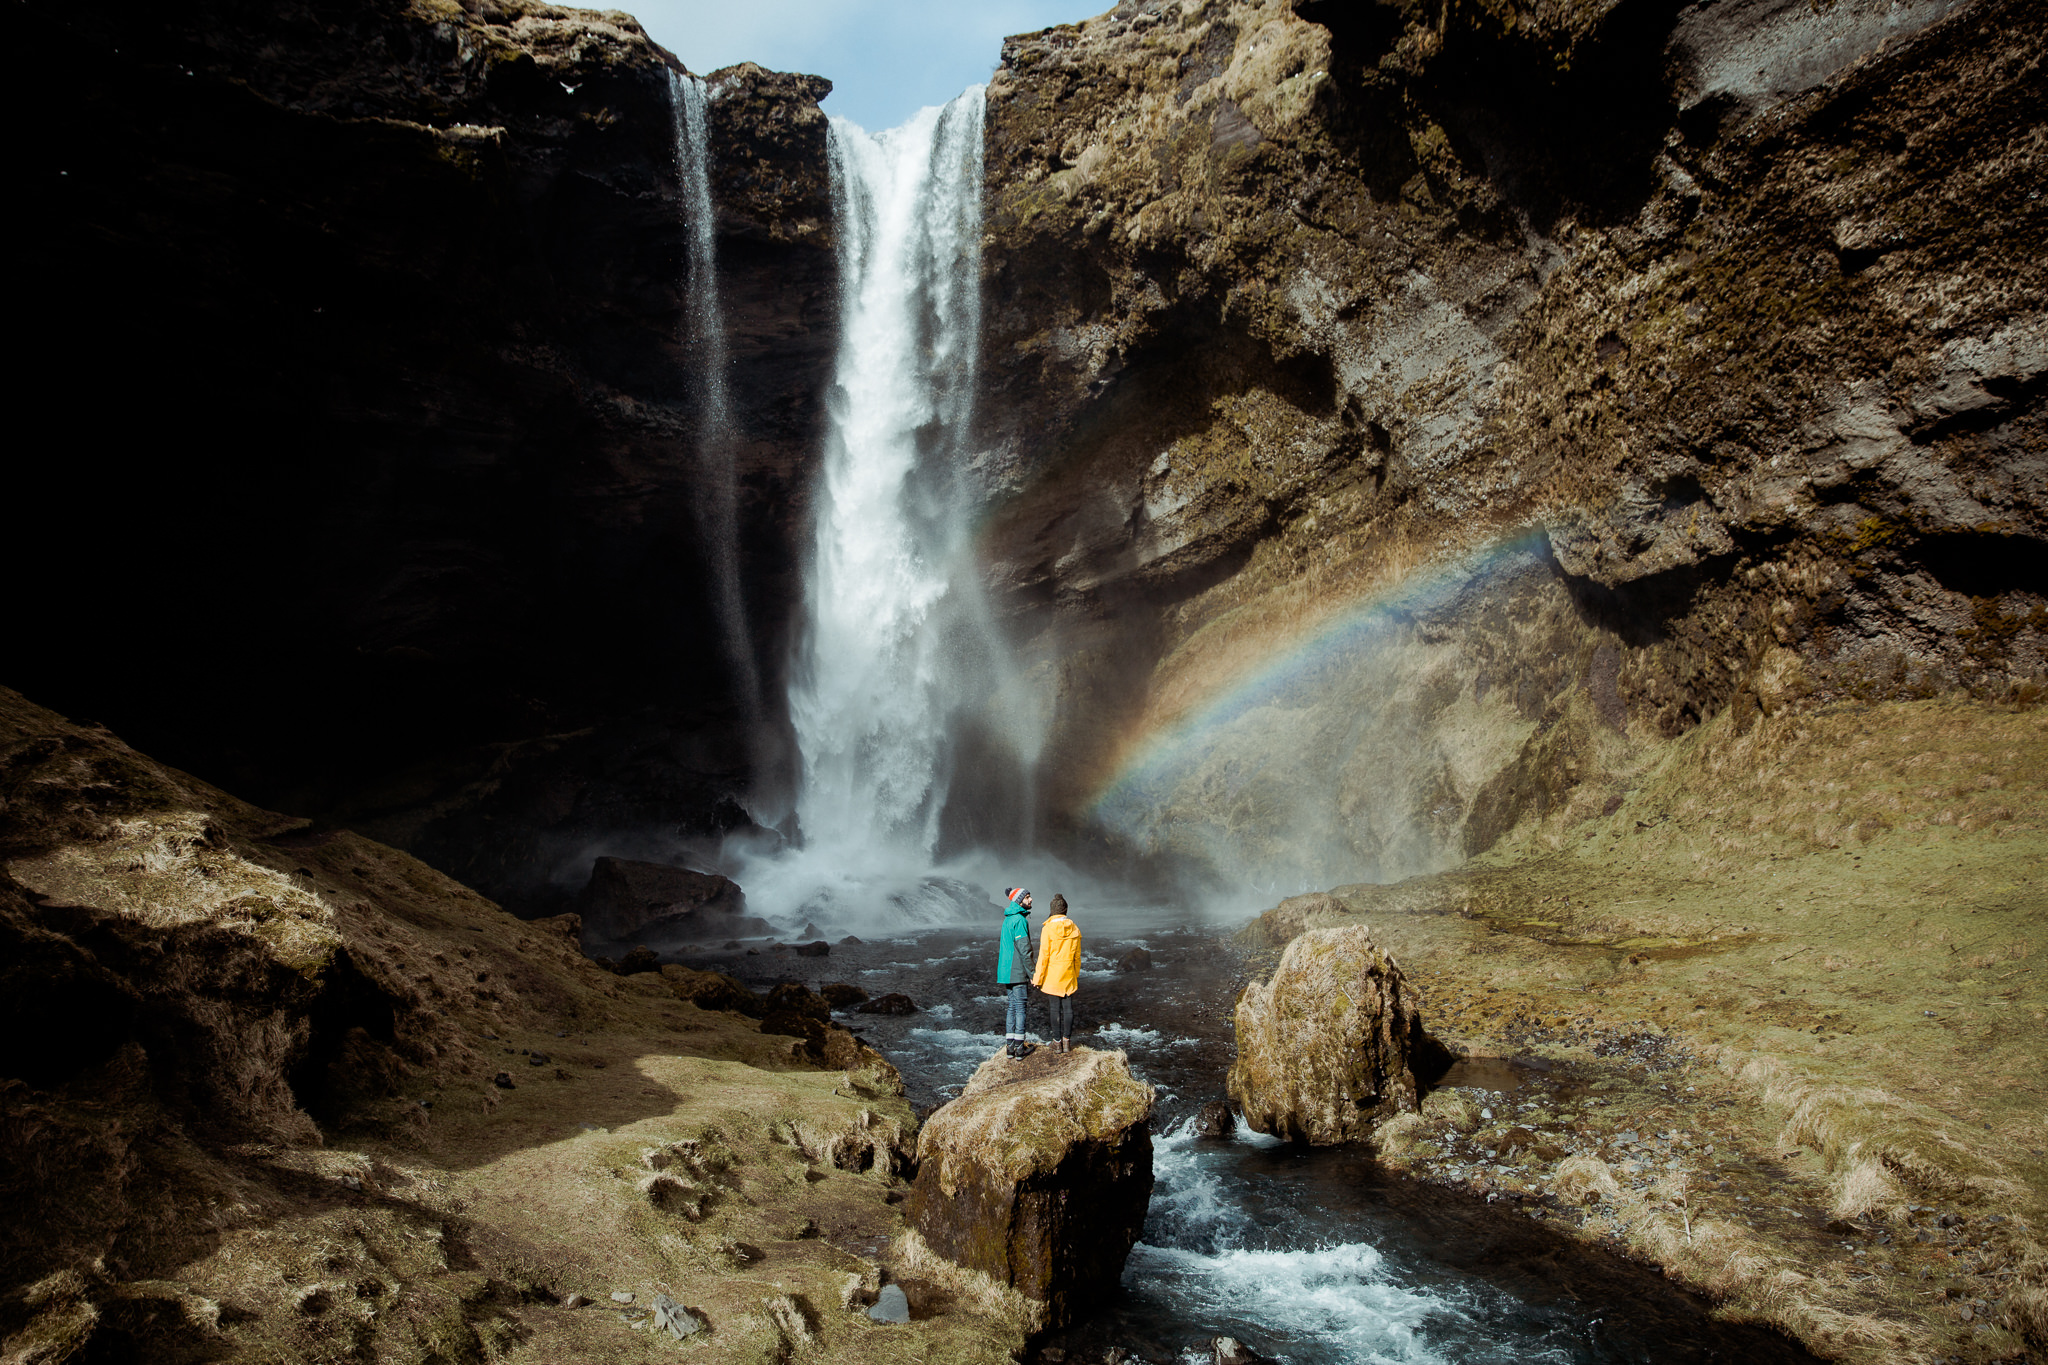 Monita and I in front of hidden waterfall in iceland with a rainbow